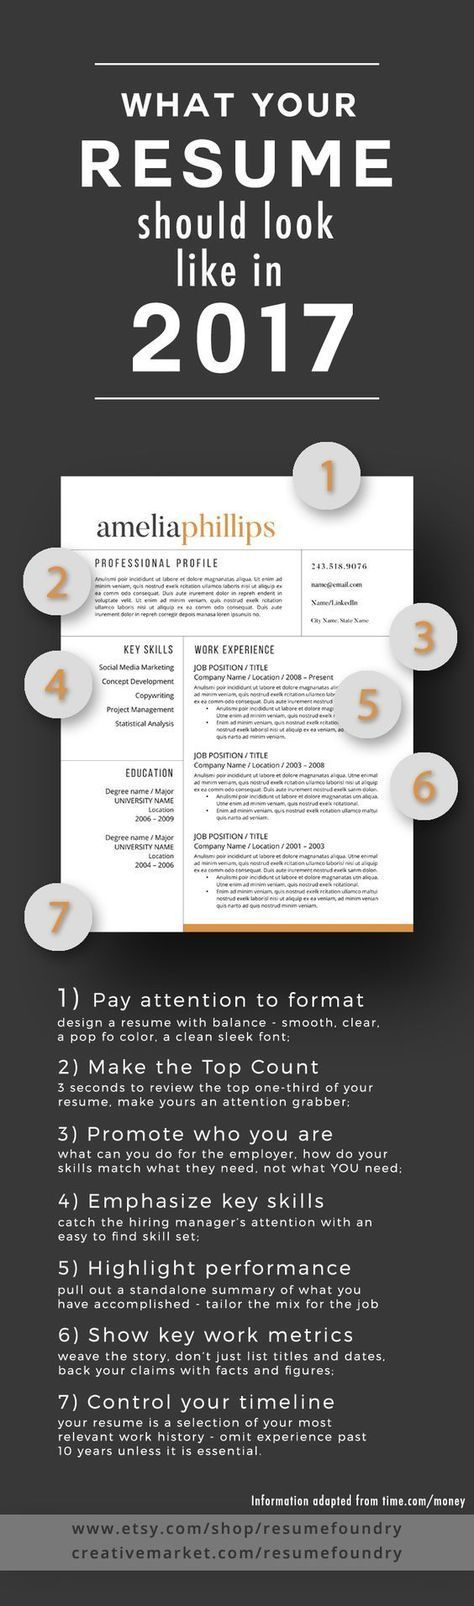 Best 25+ Resume skills ideas on Pinterest Resume, Job search and - soft skills list